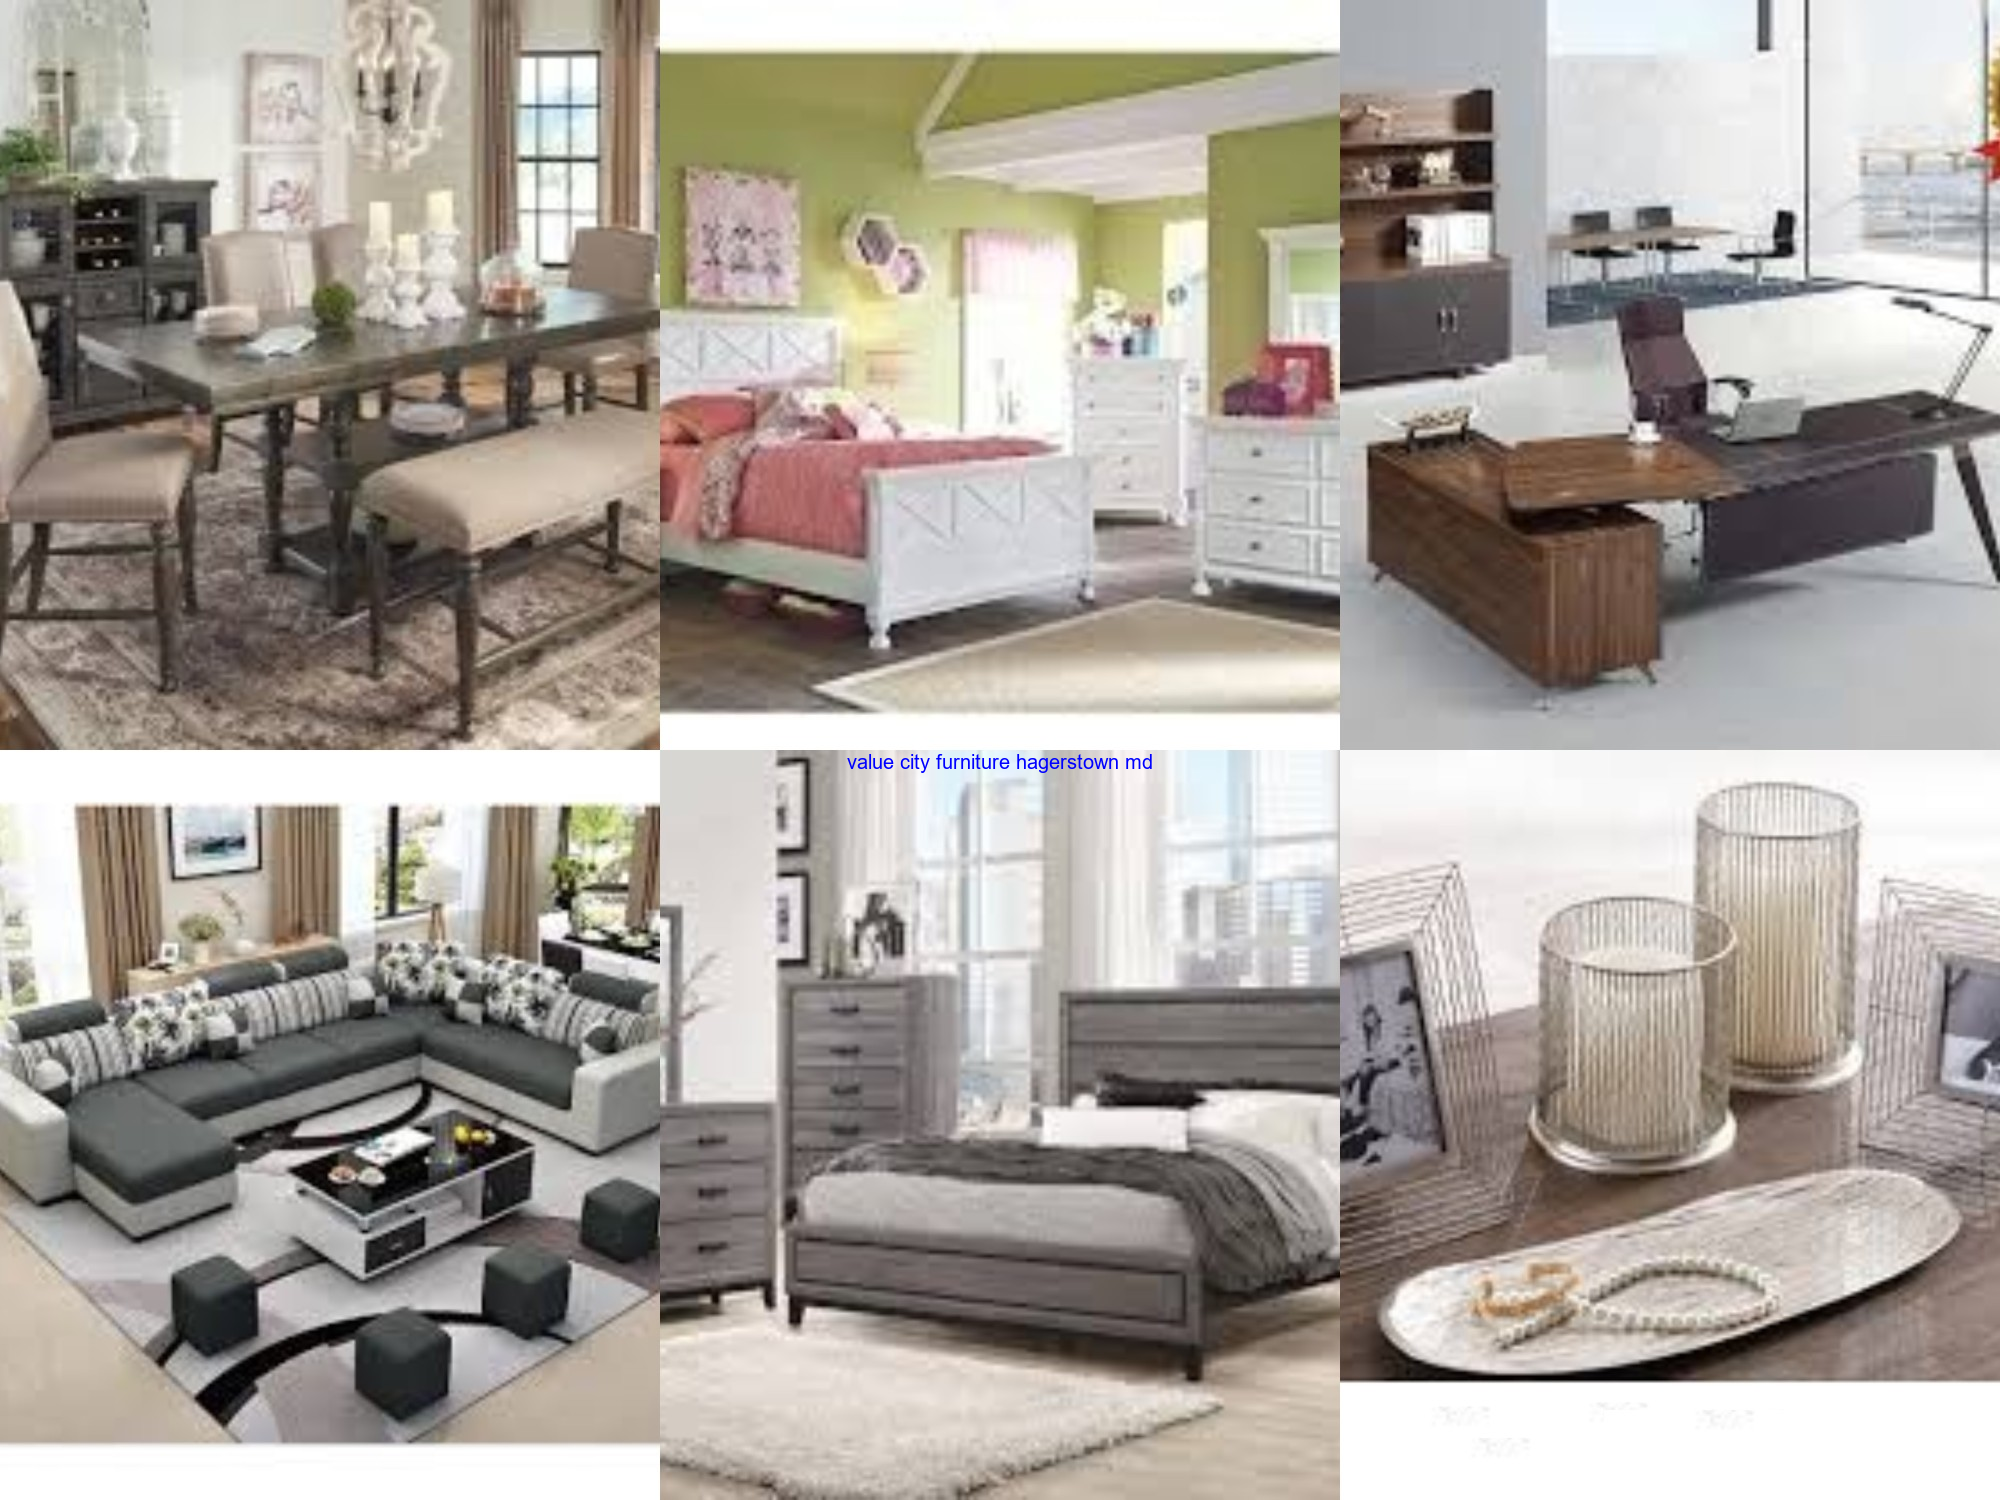 Value City Furniture Hagerstown Md In 2020 Furniture Prices Ashley Furniture Wholesale Furniture